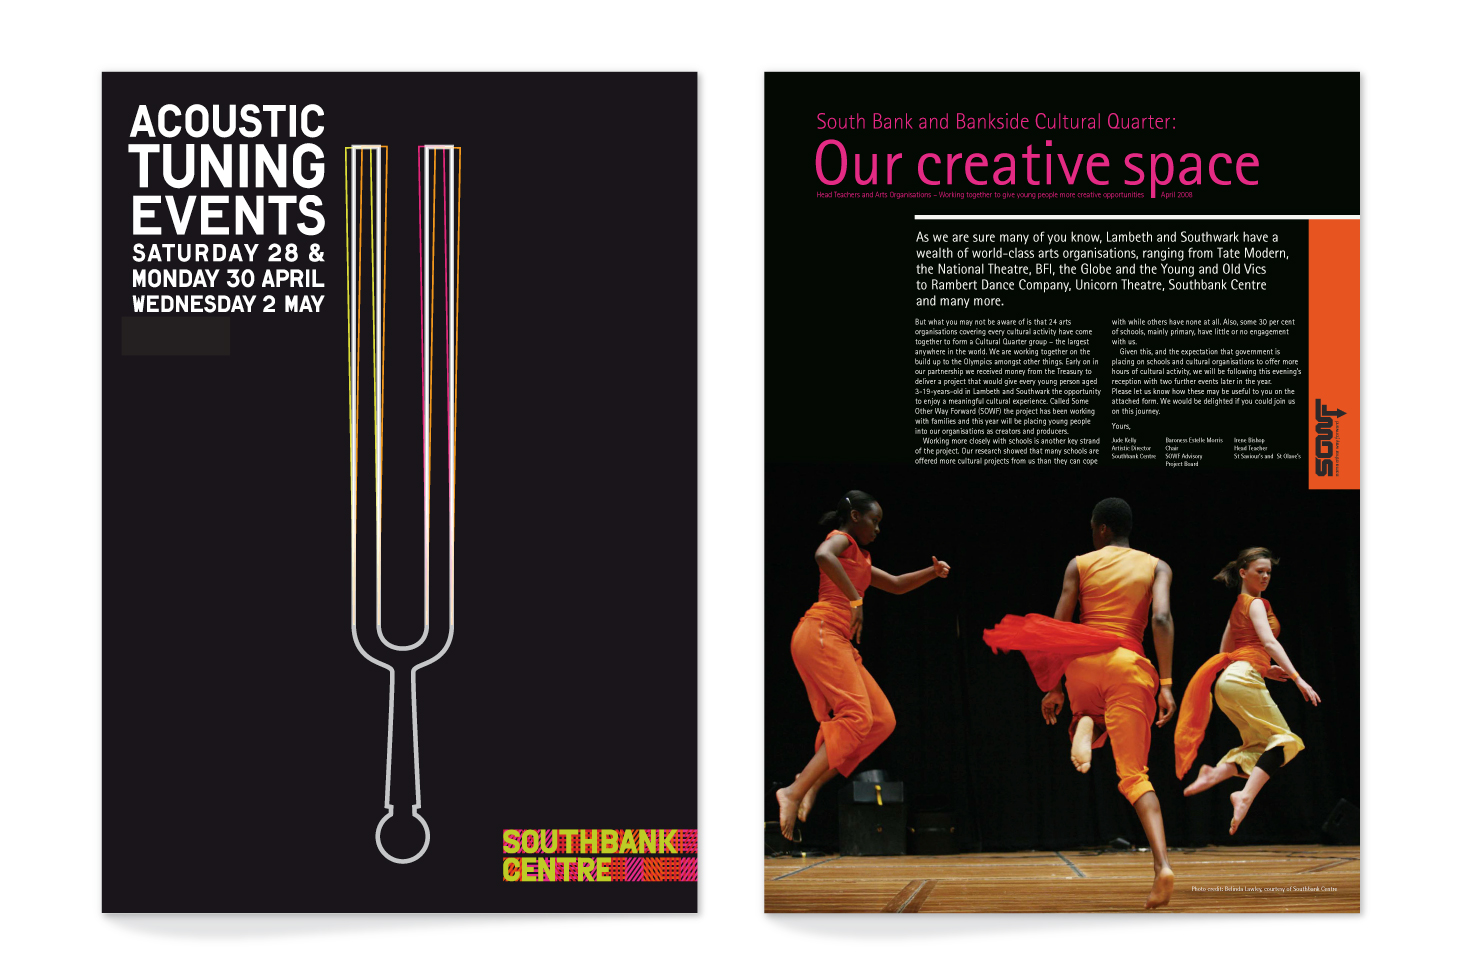 Southbank Centre covers